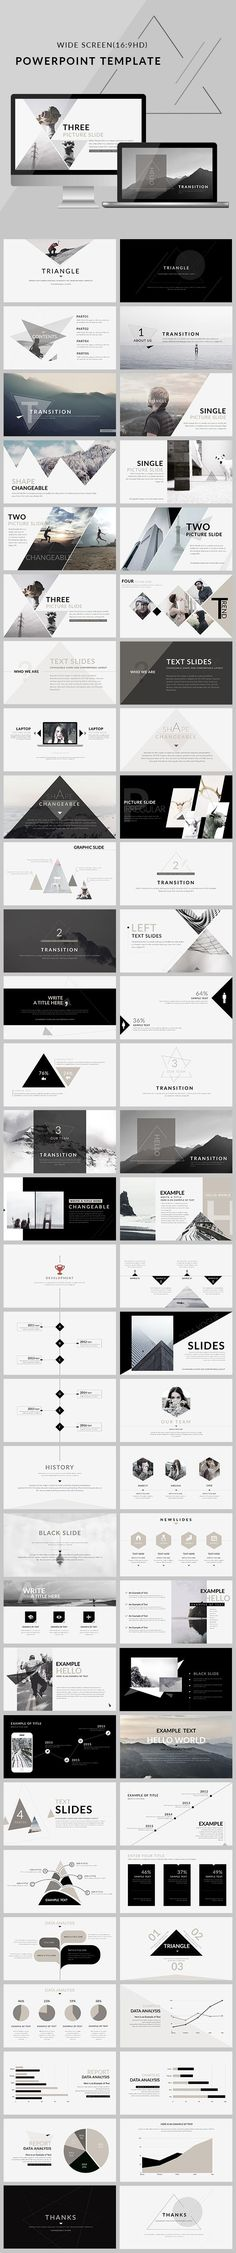 Triangle - Clean trend PowerPoint presentation  • Only available here! → https://graphicriver.net/item/triangle-clean-trend-powerpoint-presentation/17165873?ref=pxcr